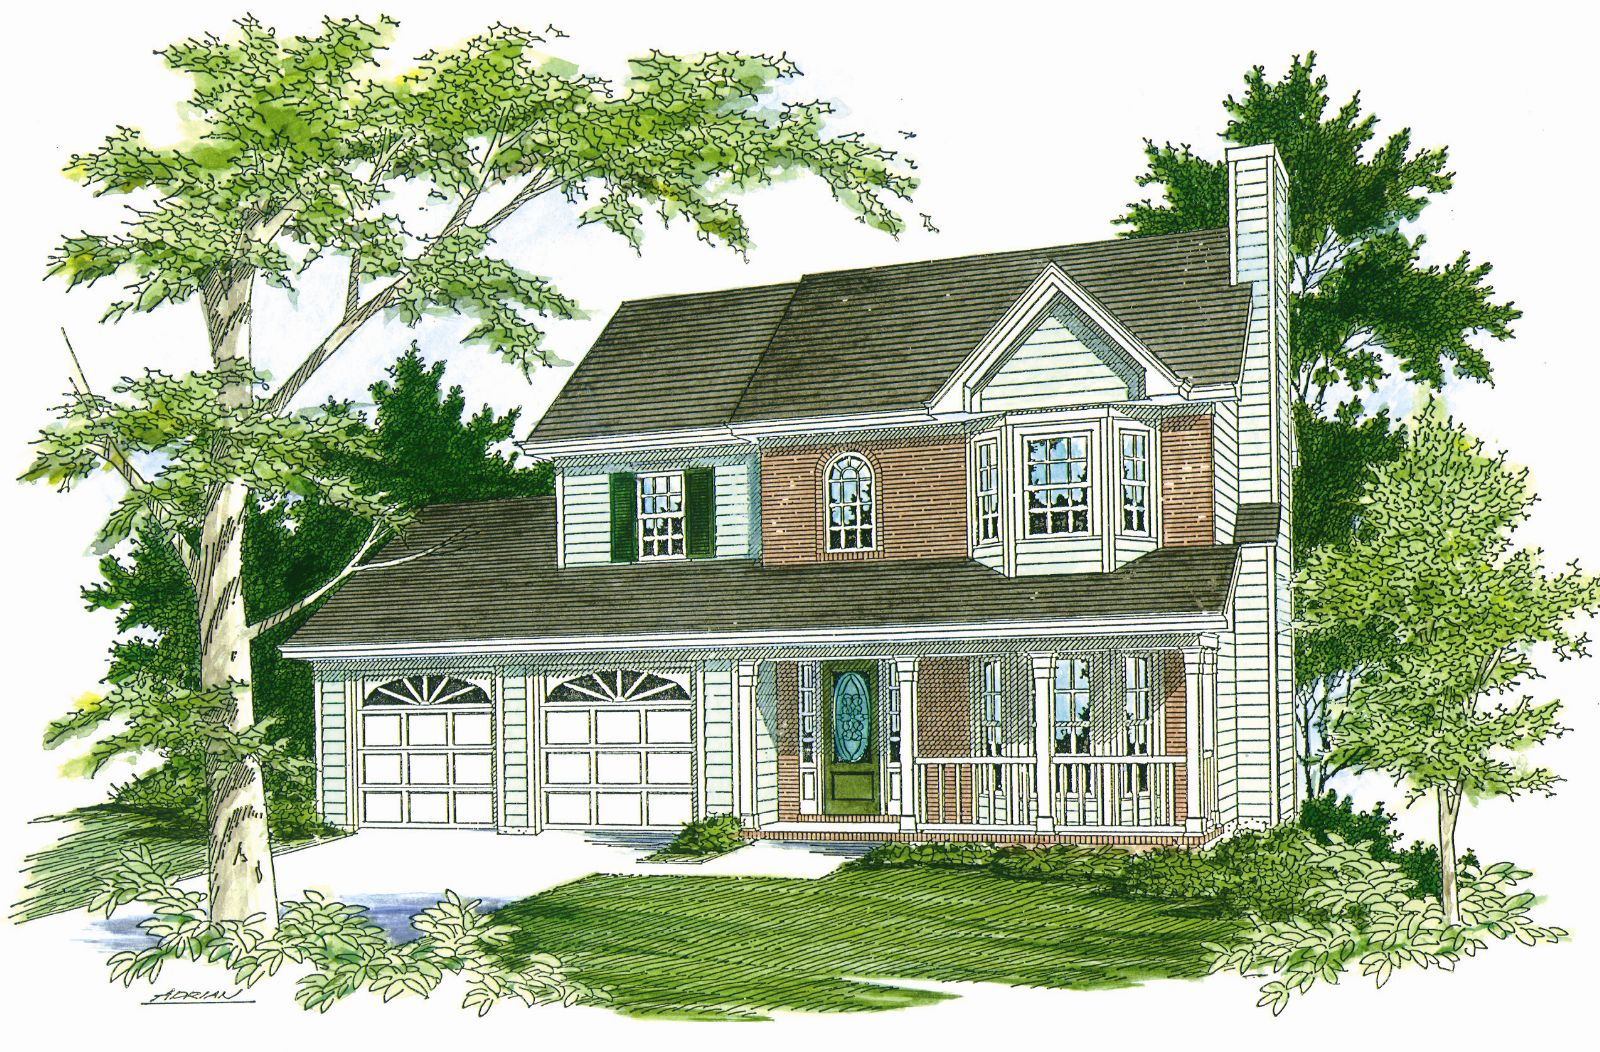 House plans with cost estimates to build house plan cost for Home building cost estimator